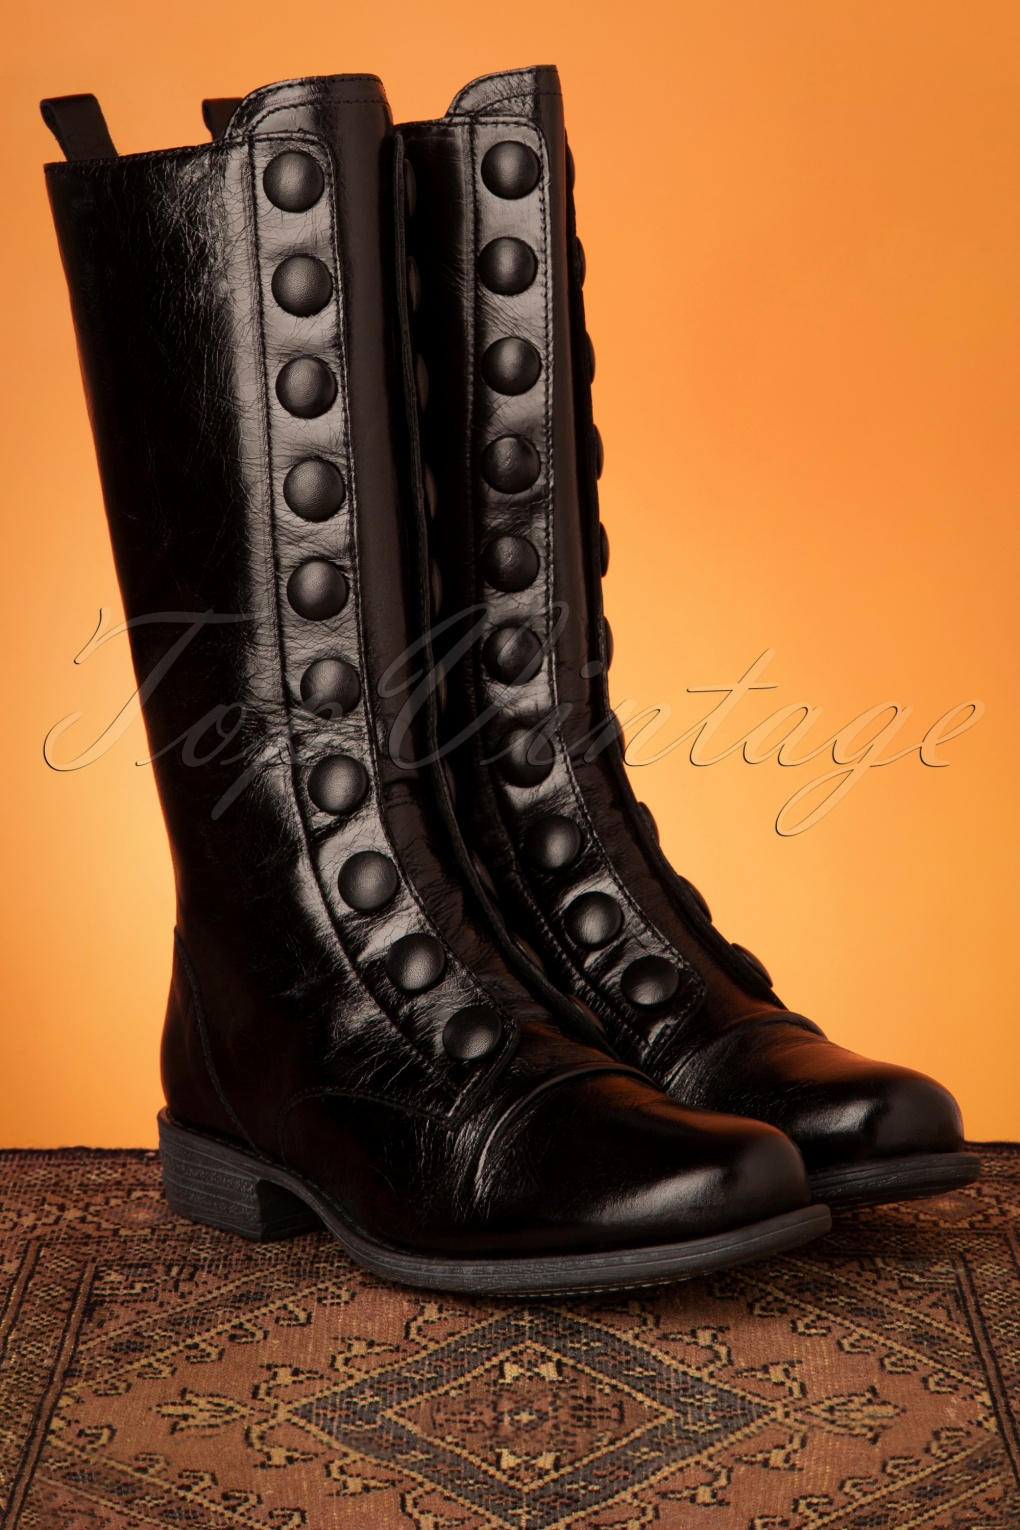 Vintage Boots, Retro Boots 60s Lincoln Leather Boots in Black £174.21 AT vintagedancer.com